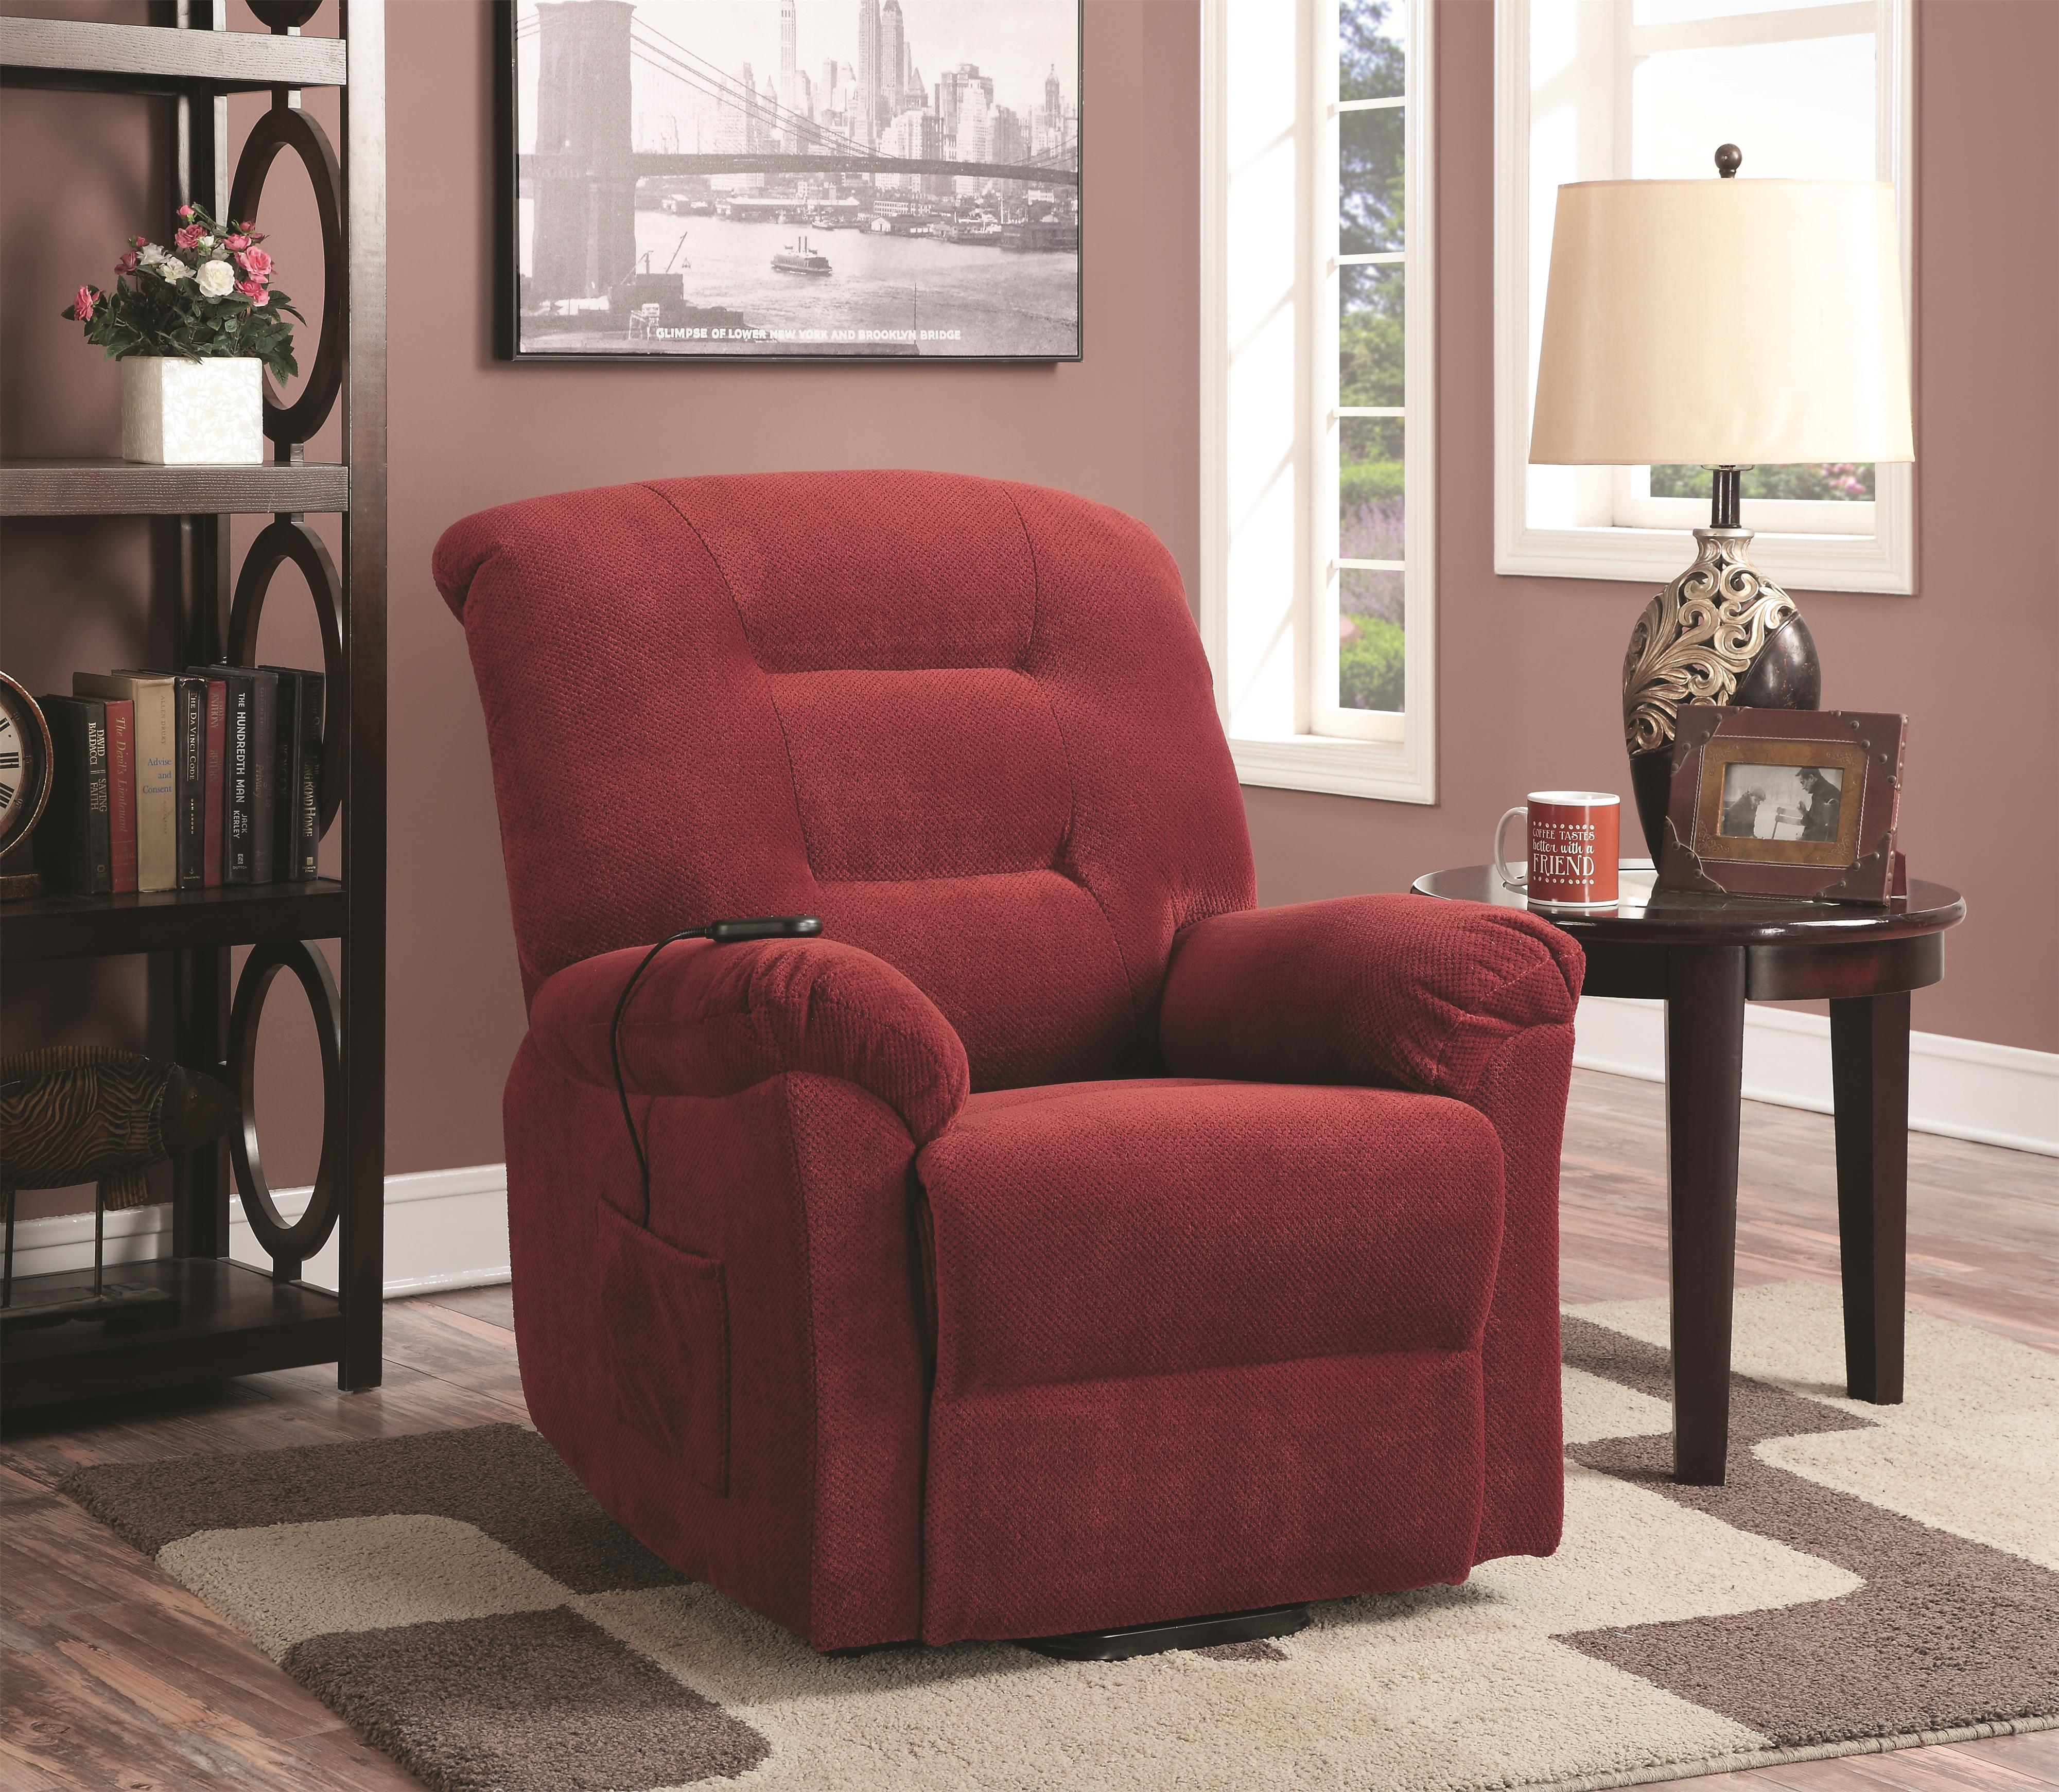 Coaster Recliners Power Lift Recliner - Item Number: 600400